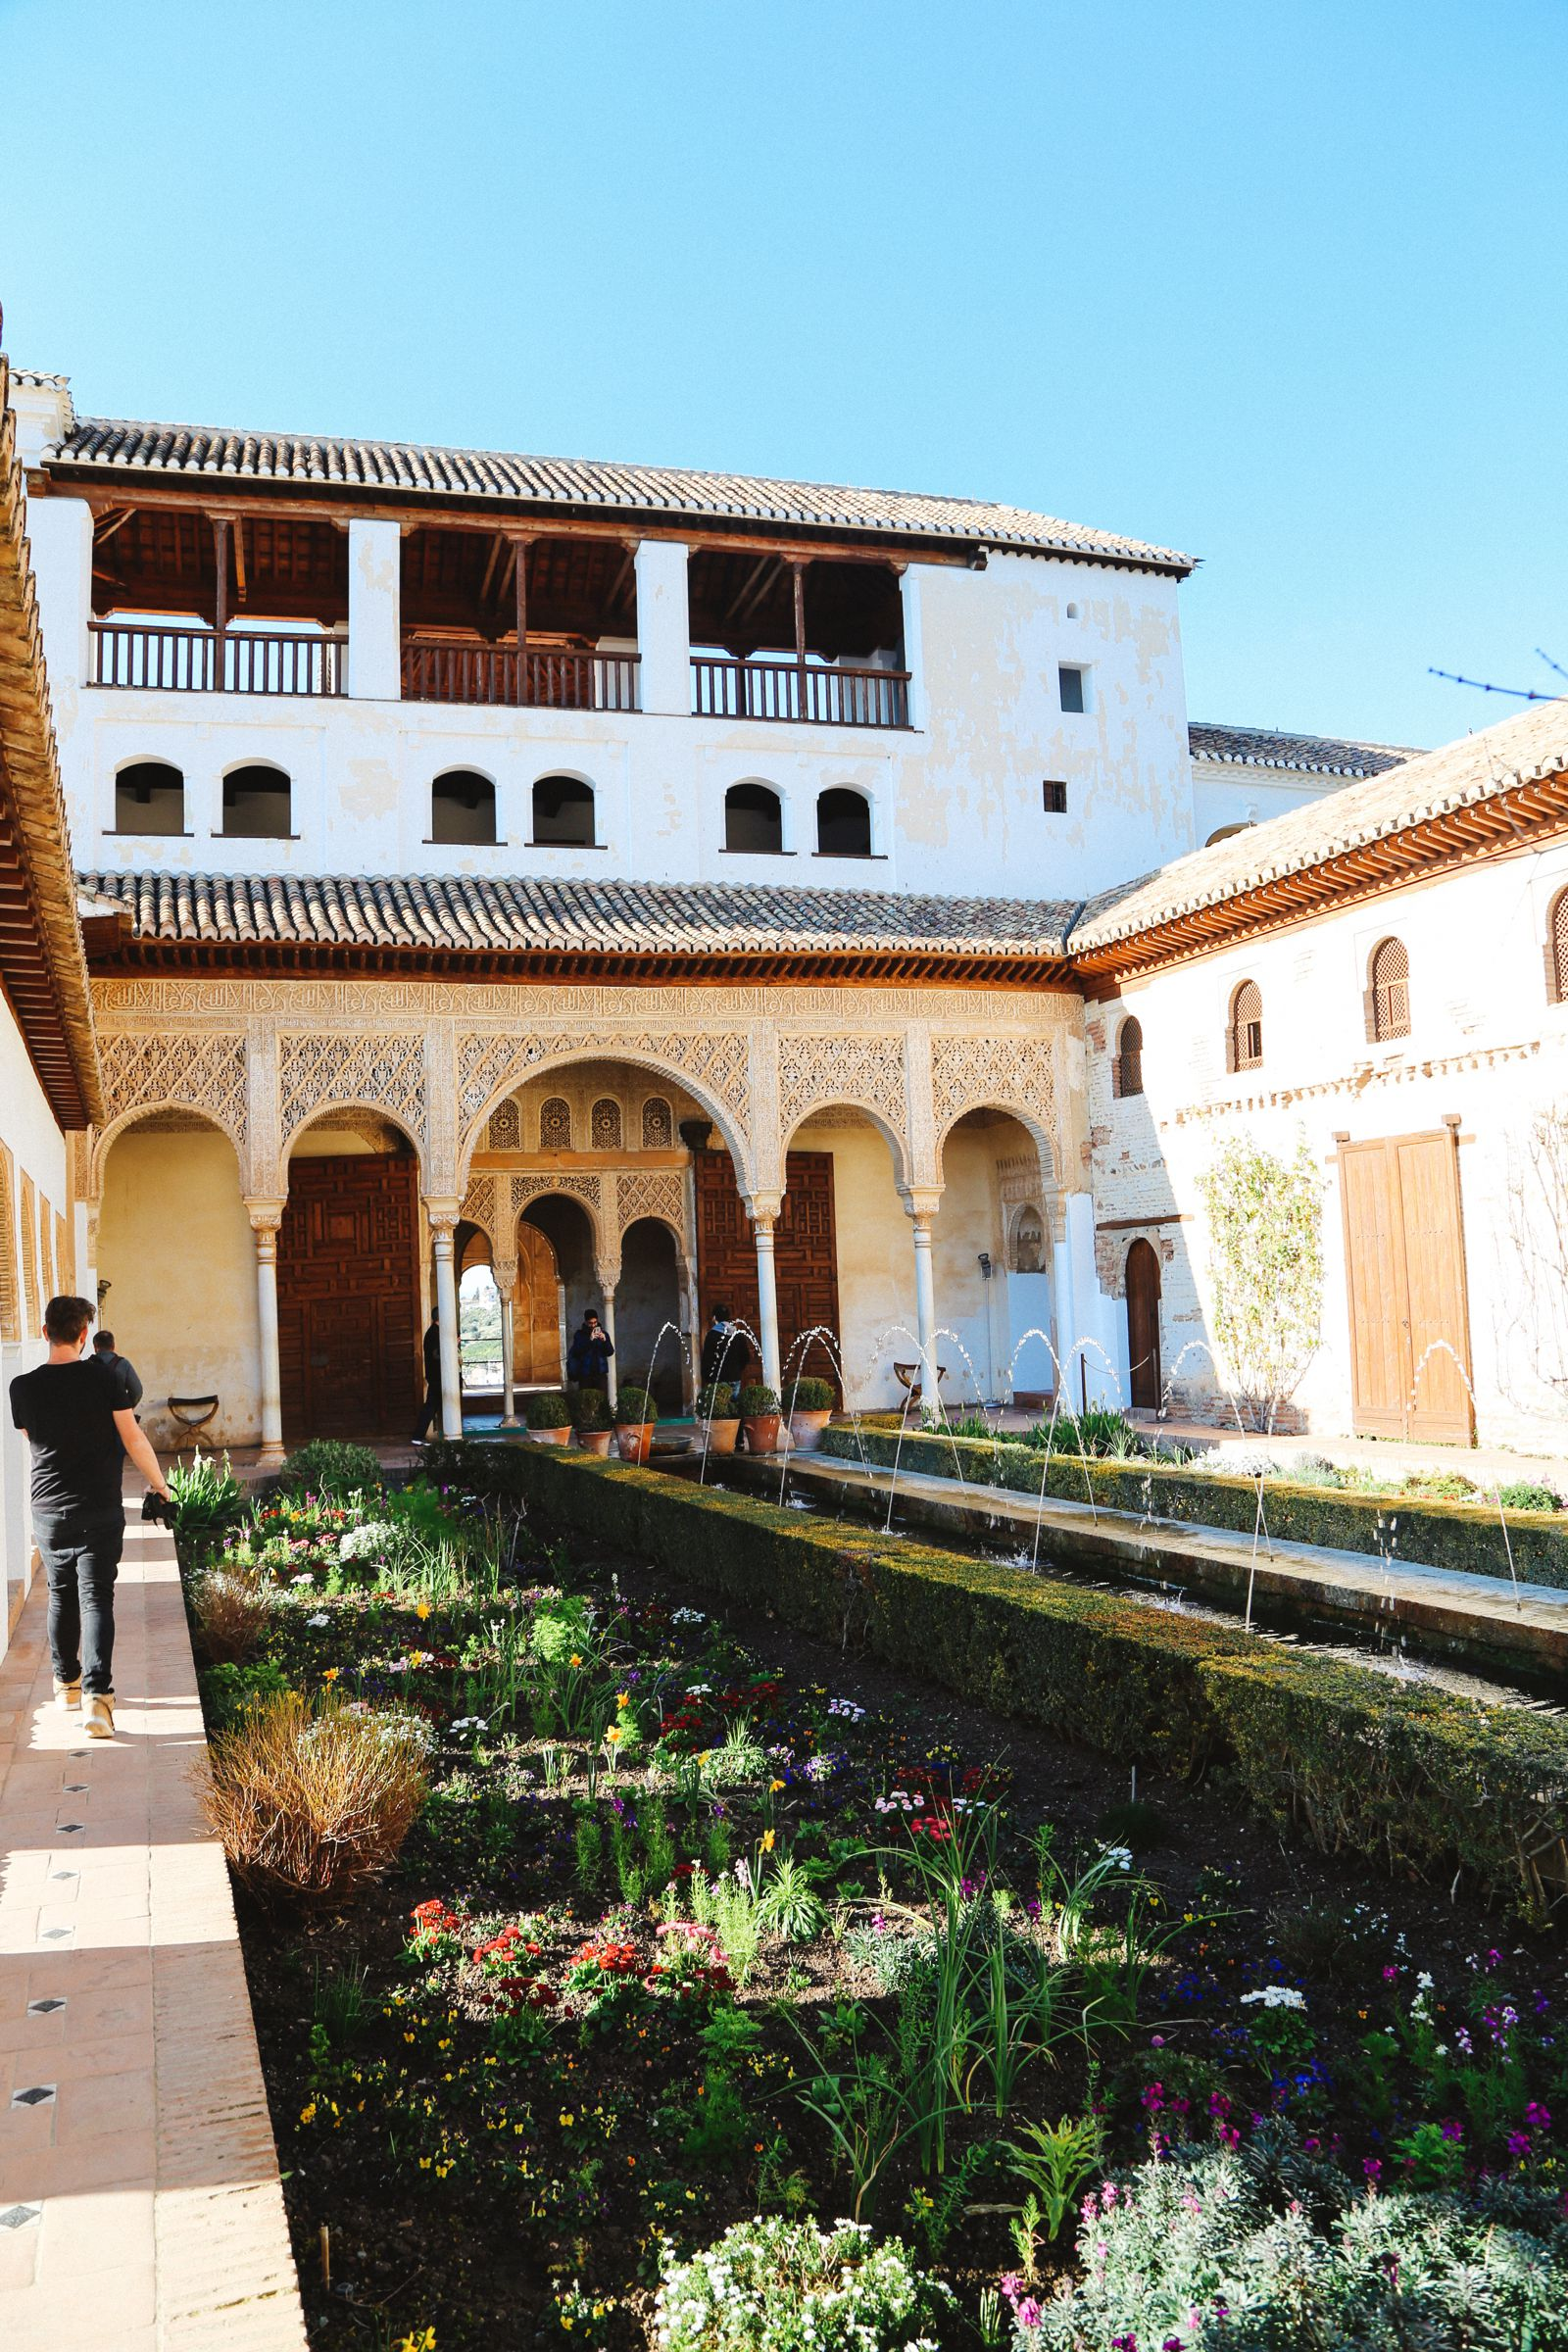 The Absolutely Beautiful Generalife Palace… In Granada, Spain (16)